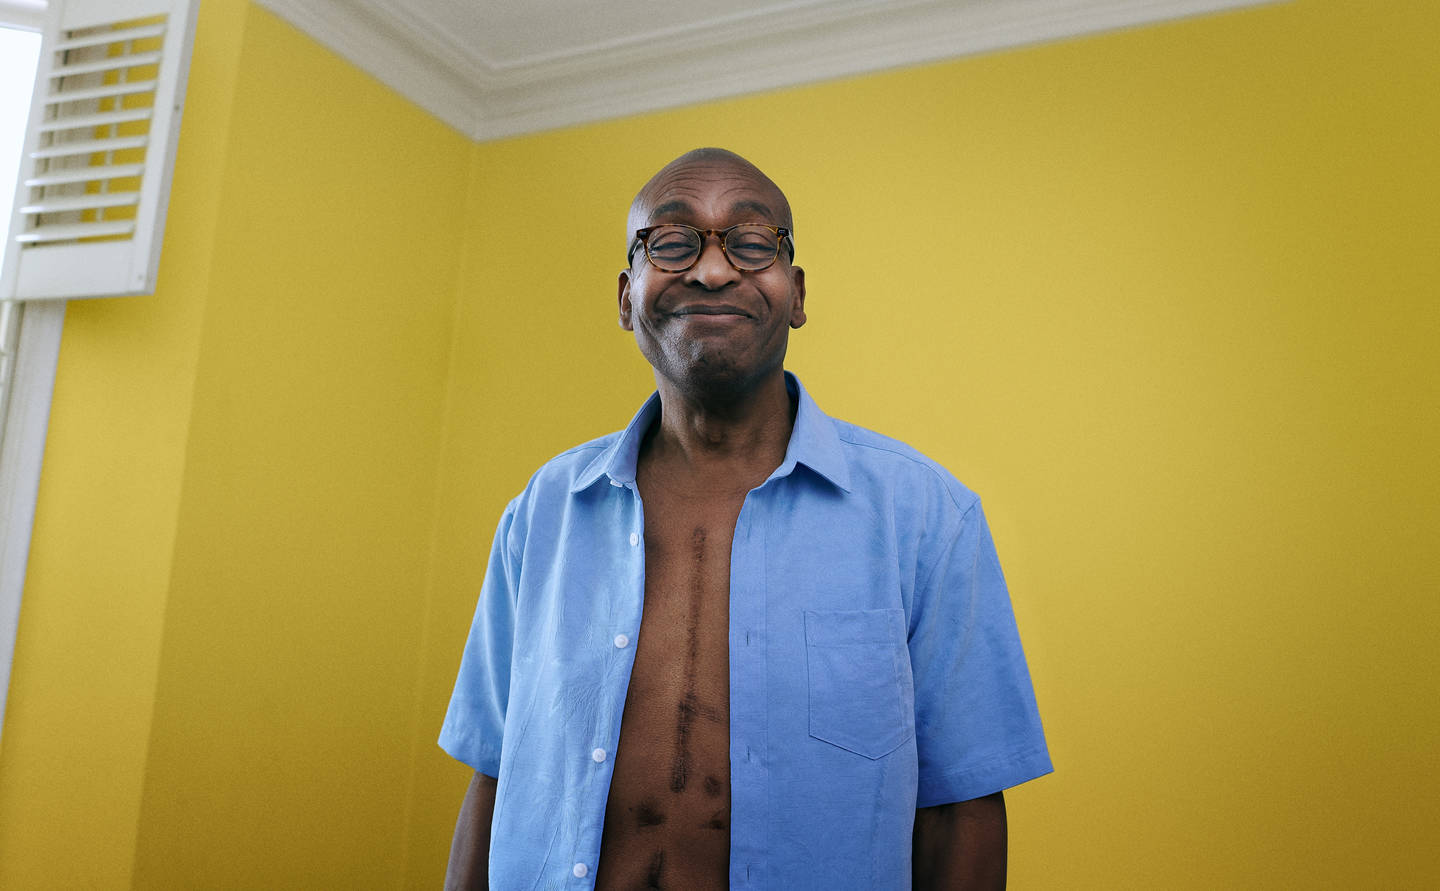 Man with scar on chest standing up